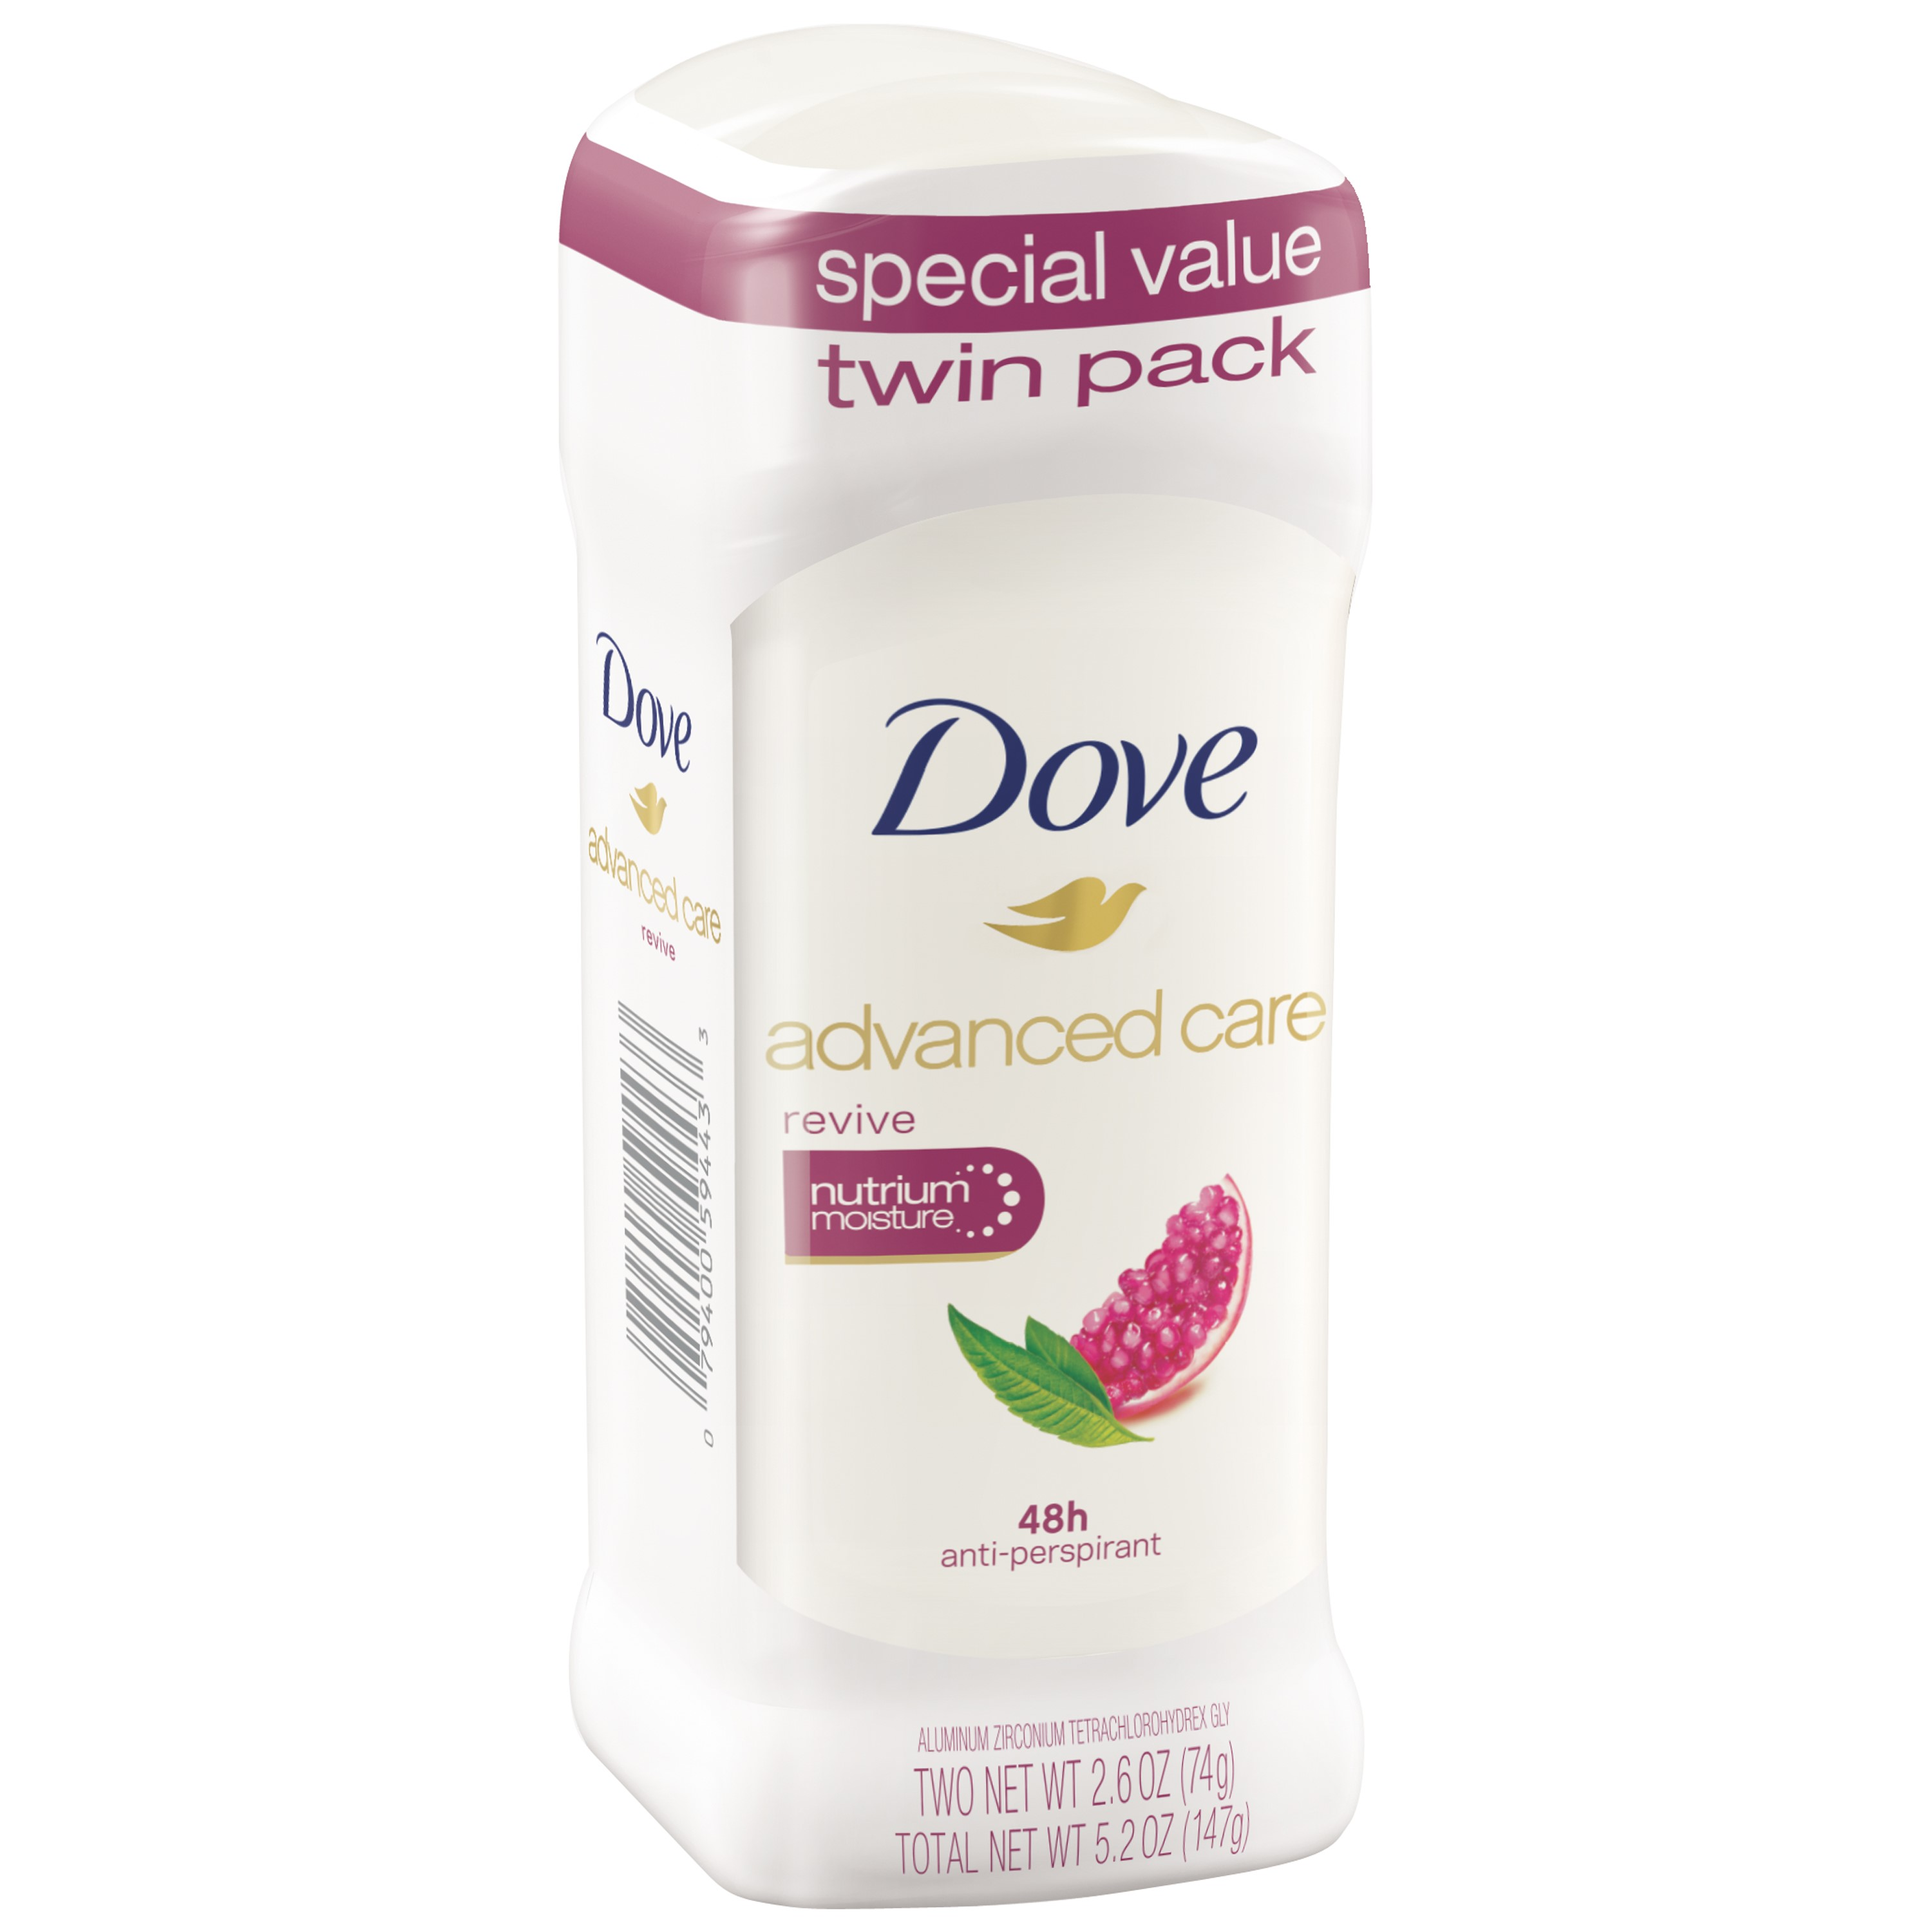 Dove Advance Care Antiperspirant Deodorant Revive 2.6 oz, Twin Pack